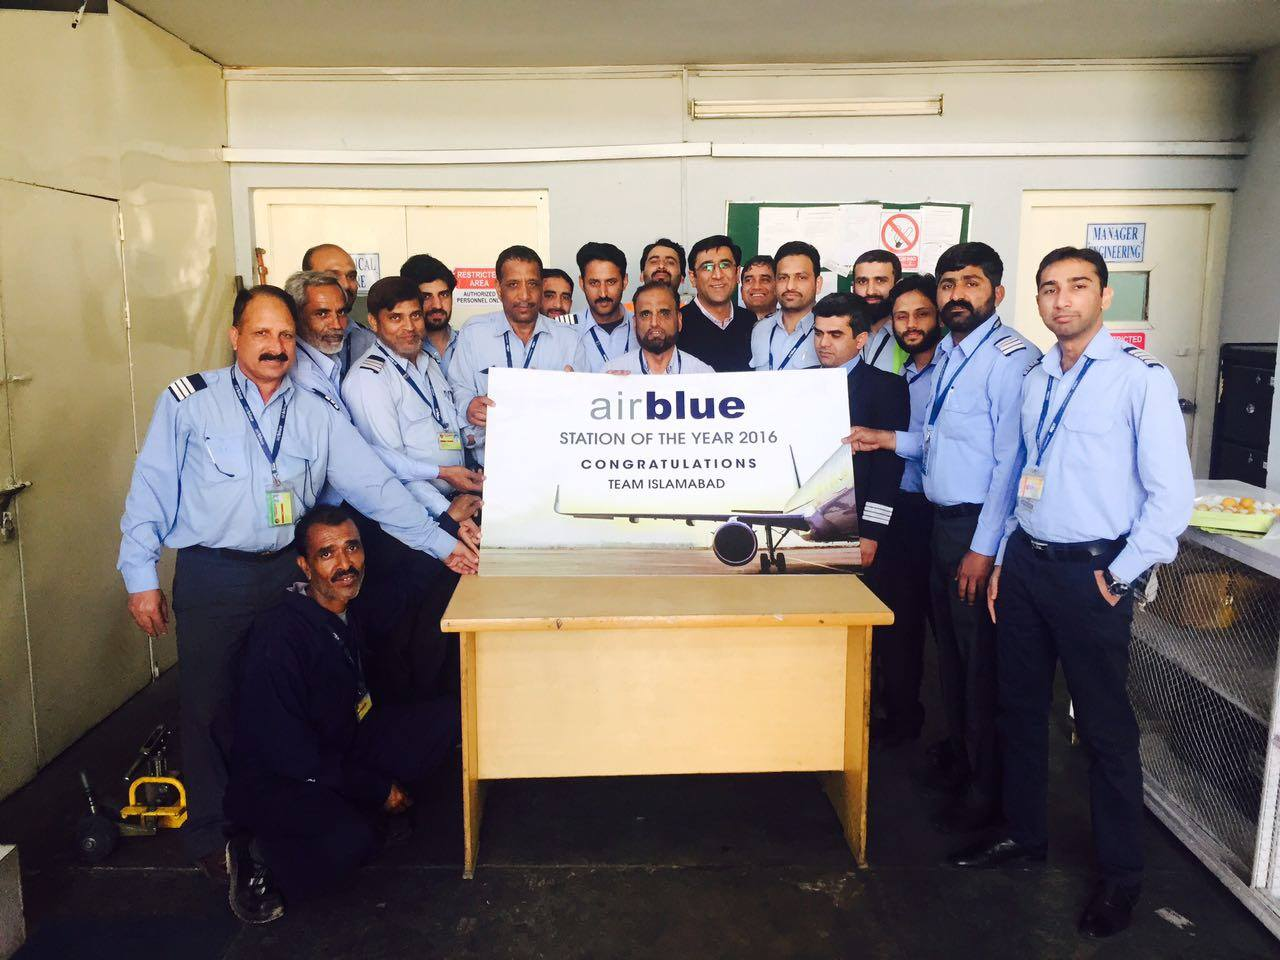 This Year Airblue Announced Engineering S Best Performance Awards 2016 To Abad Station The High Achievers Of All Stations